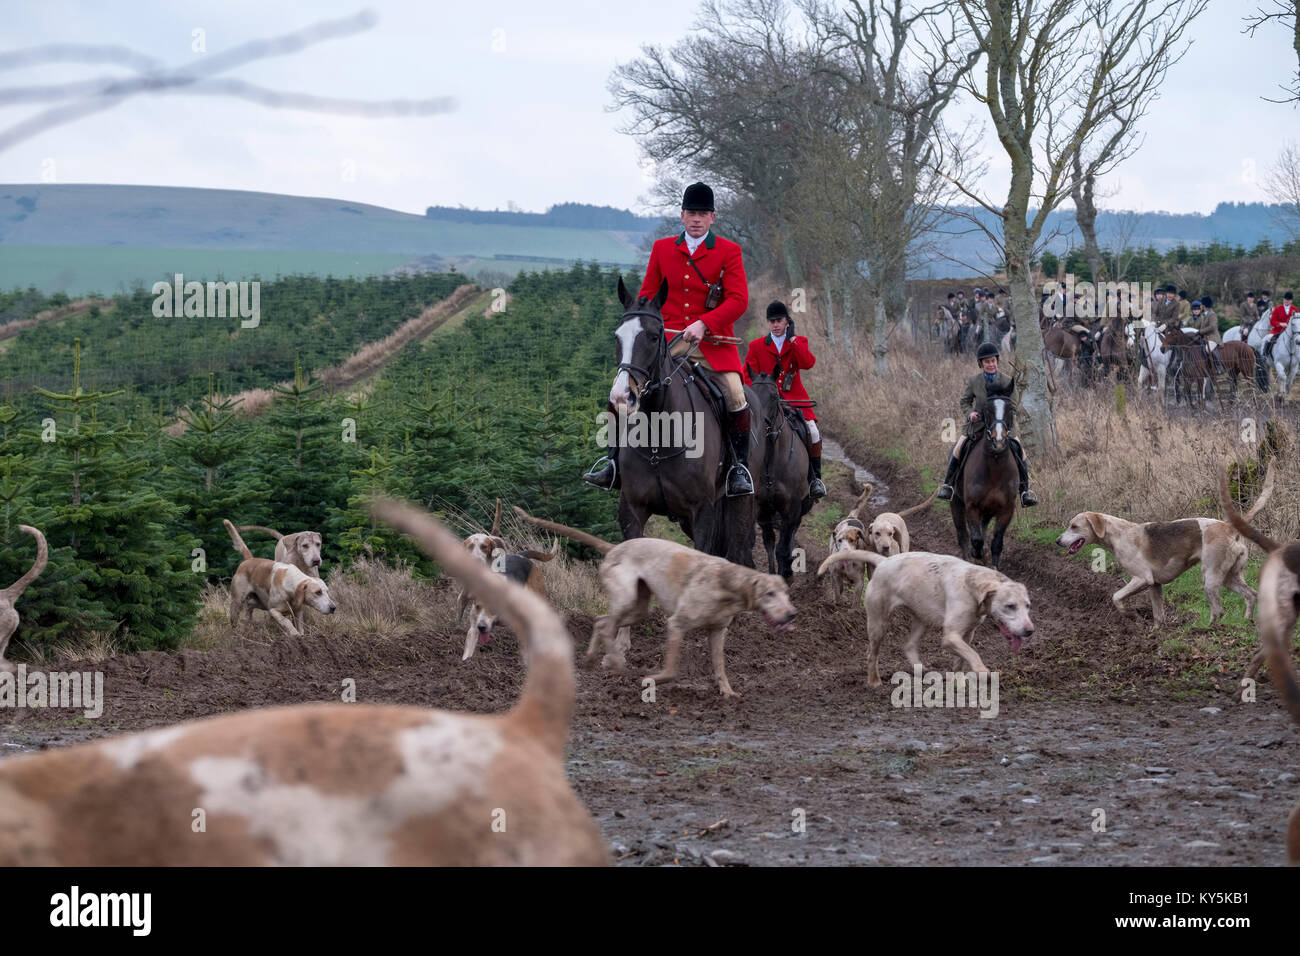 Ancrum, Rawflat /, UK. 13th January, 2018. Buccleuch Foxhounds at Rawflat, near Ancrum Caption: Huntsman Tim Allen Stock Photo